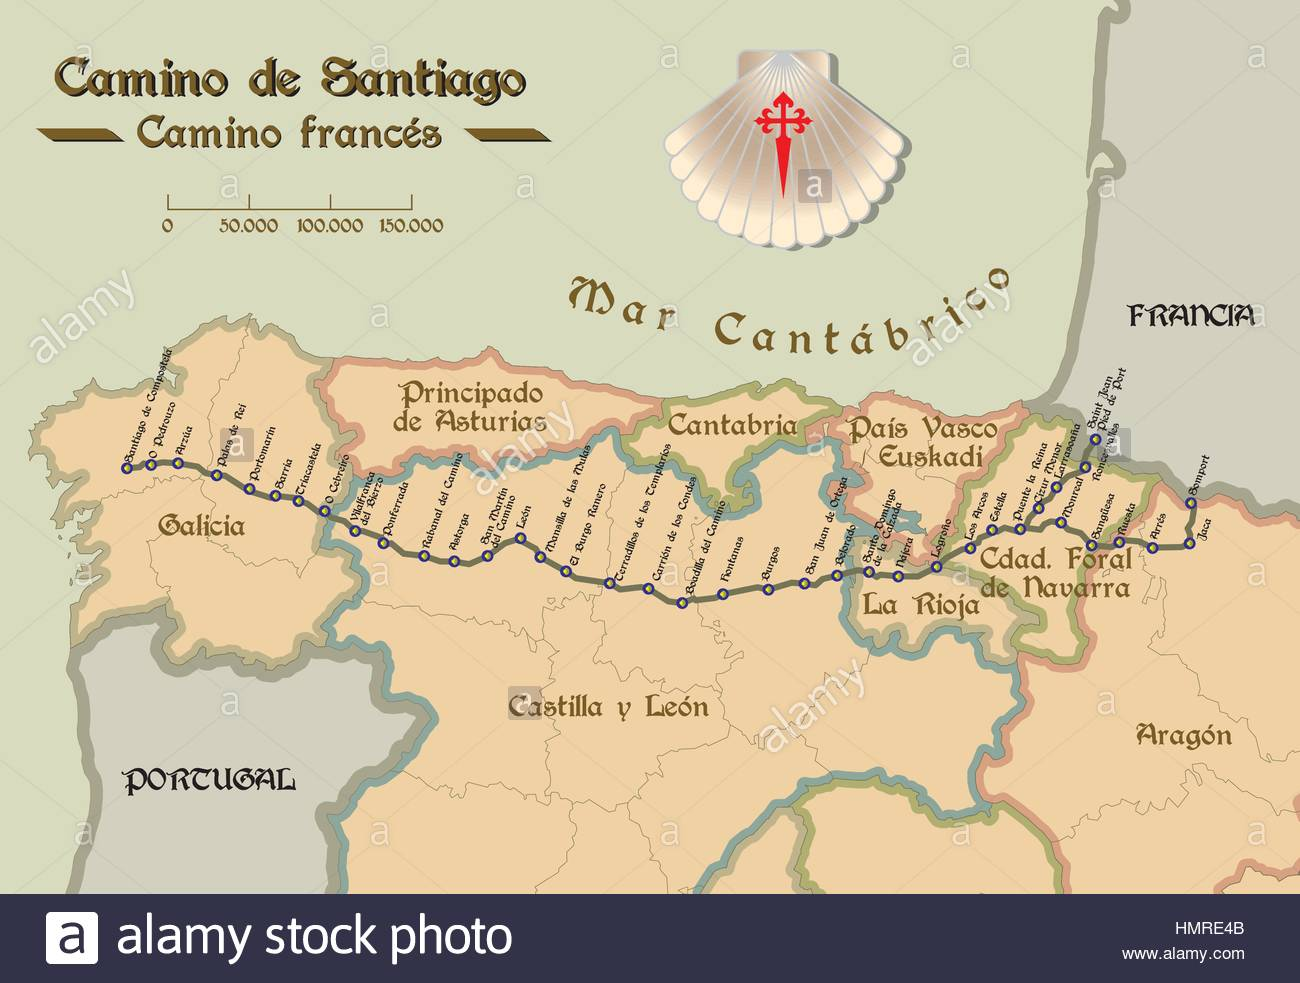 Map of Saint James way with all the stages of french way  Mapa del     Map of Saint James way with all the stages of french way  Mapa del Camino  de Santiago